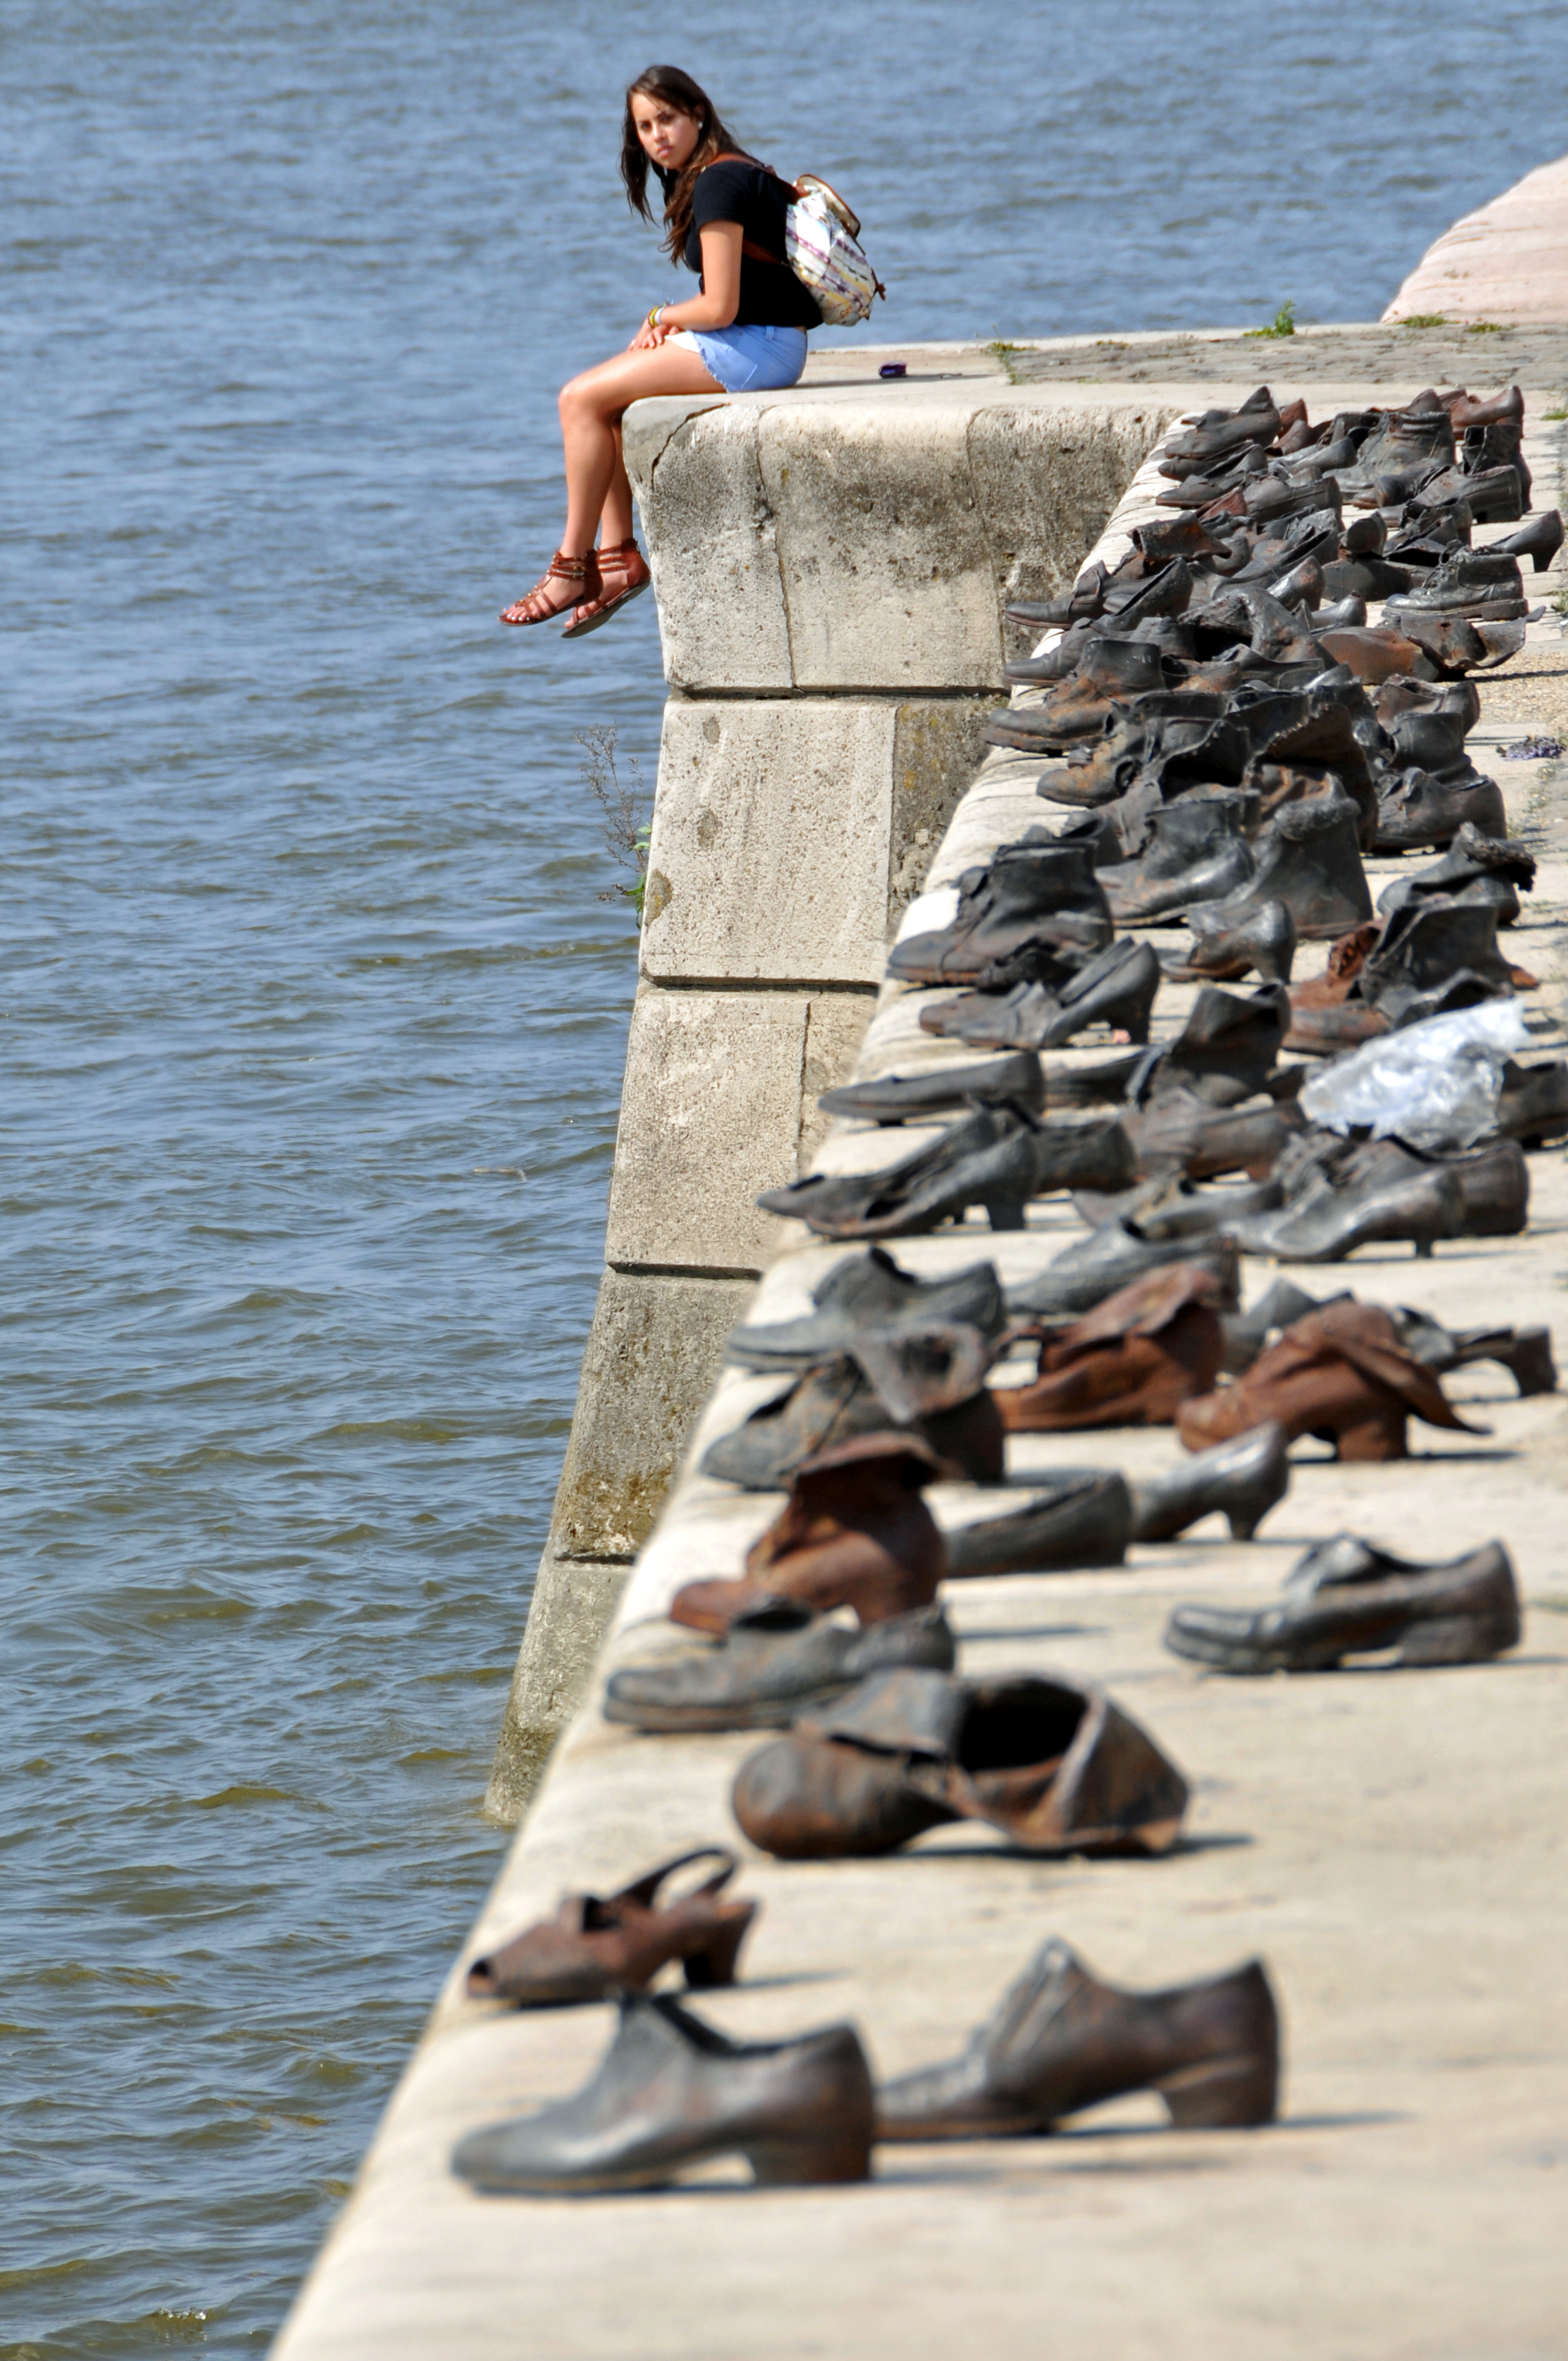 Hungary-0057_-_Shoes_on_the_Danube_(7263603836)